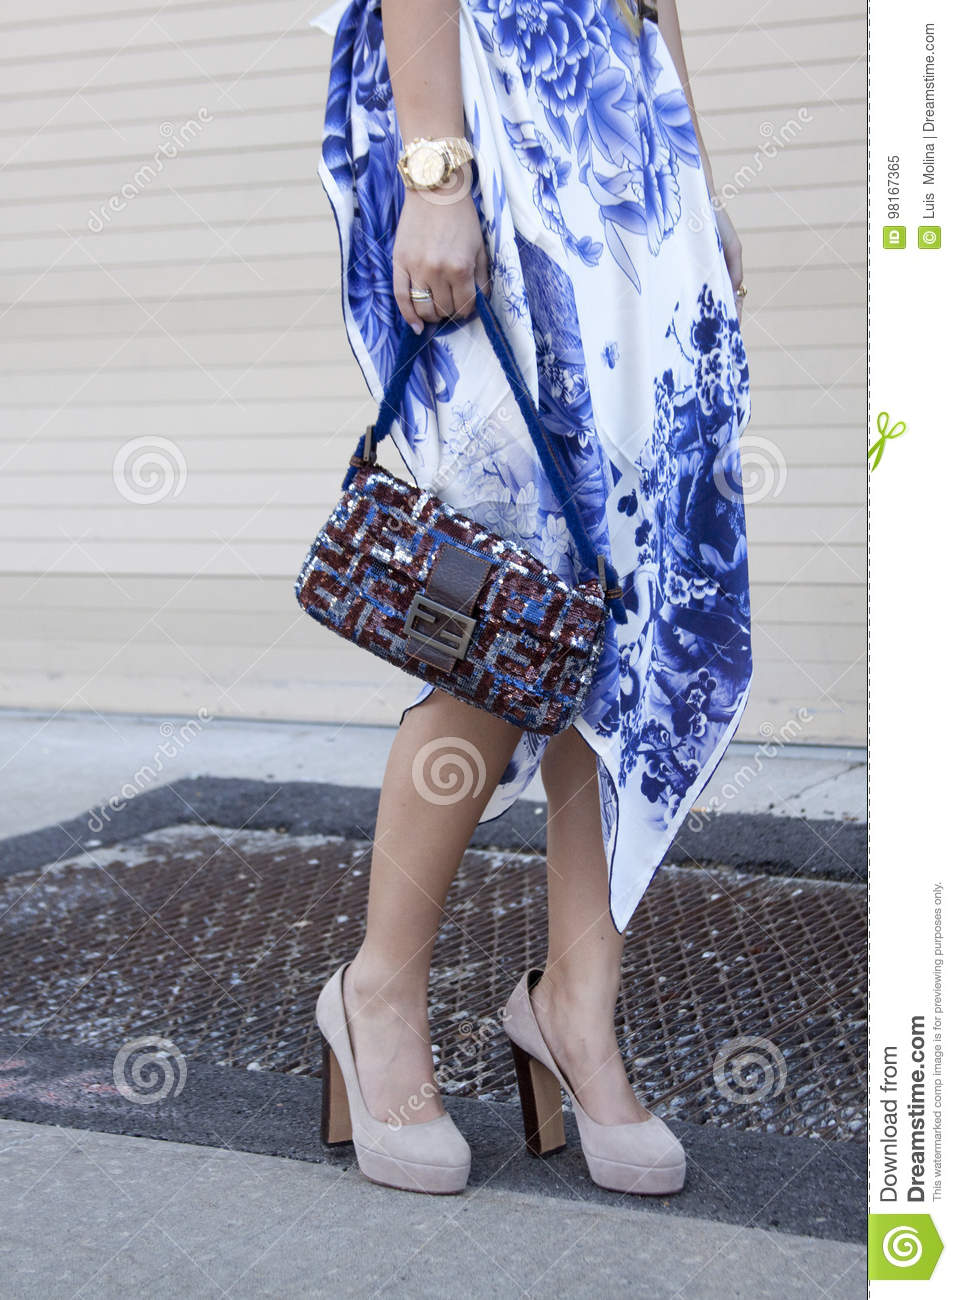 85531593b63a A Woman Holding A Designer Clutch Purse And Wearing High Heels ...